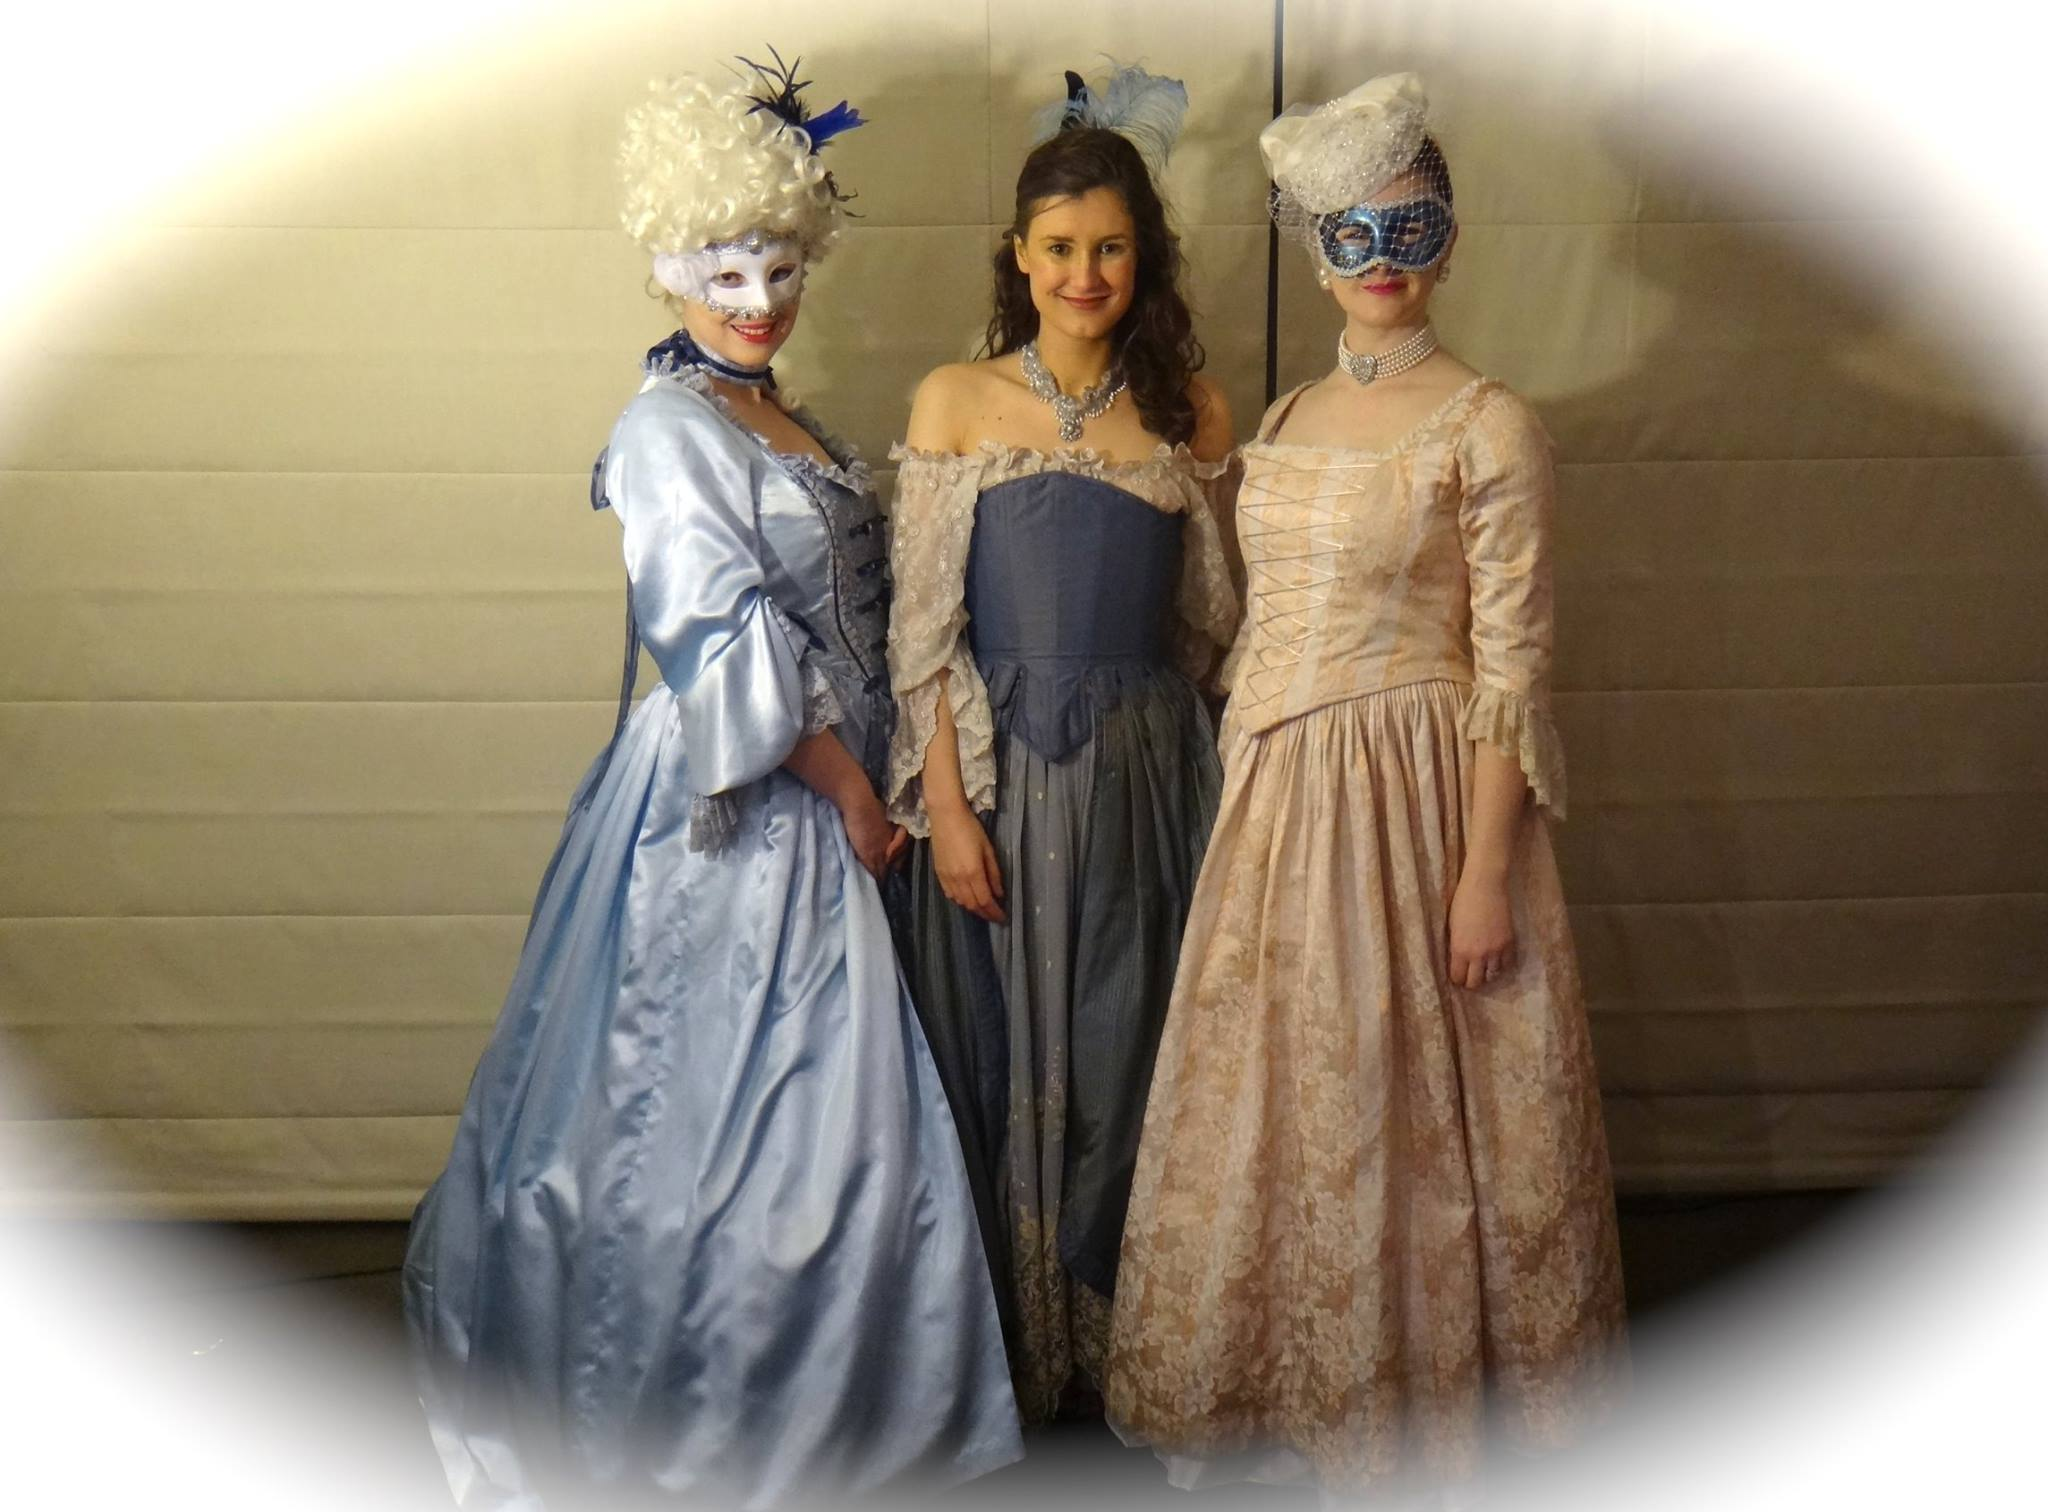 creative-show-off-costume-hire-french-masquerade  sc 1 st  school ball & creative-show-off-costume-hire-french-masquerade - Schoolball